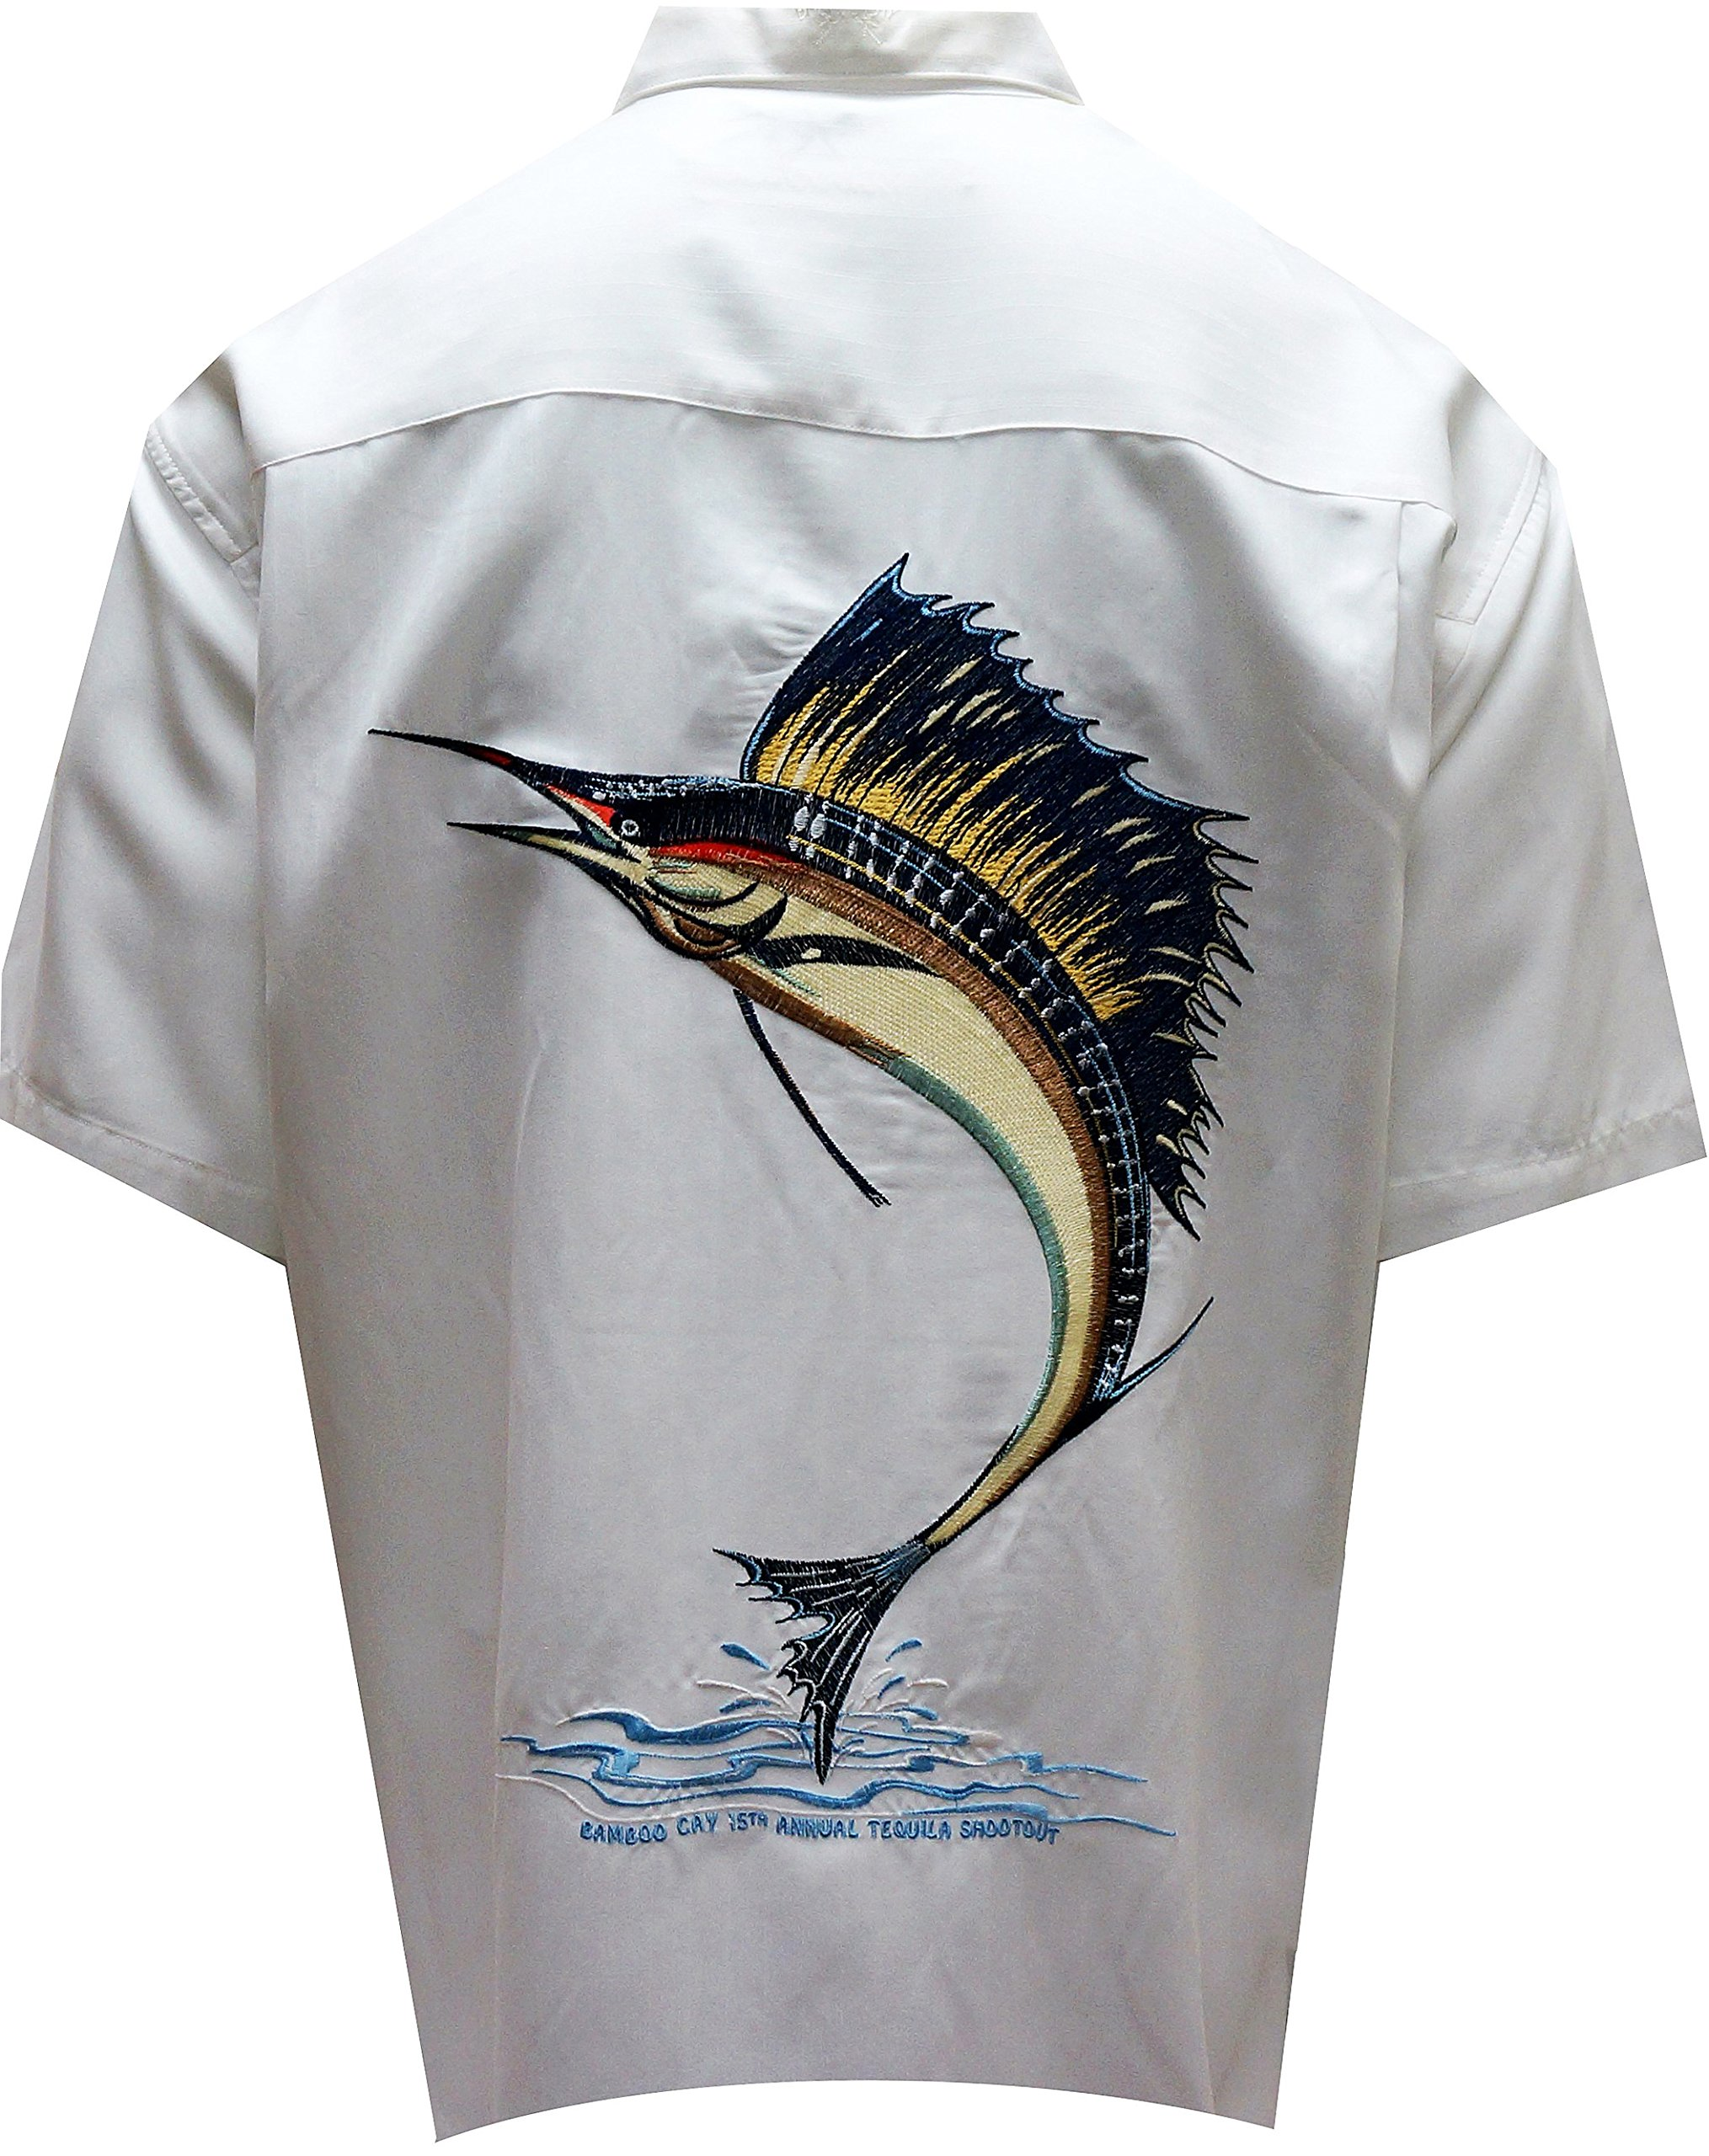 Bamboo Cay Men's Sailfish Freedom, Tropical Style Back Embroidered Hawaiian Shirt (3XL, Off White) by Bamboo Cay (Image #1)